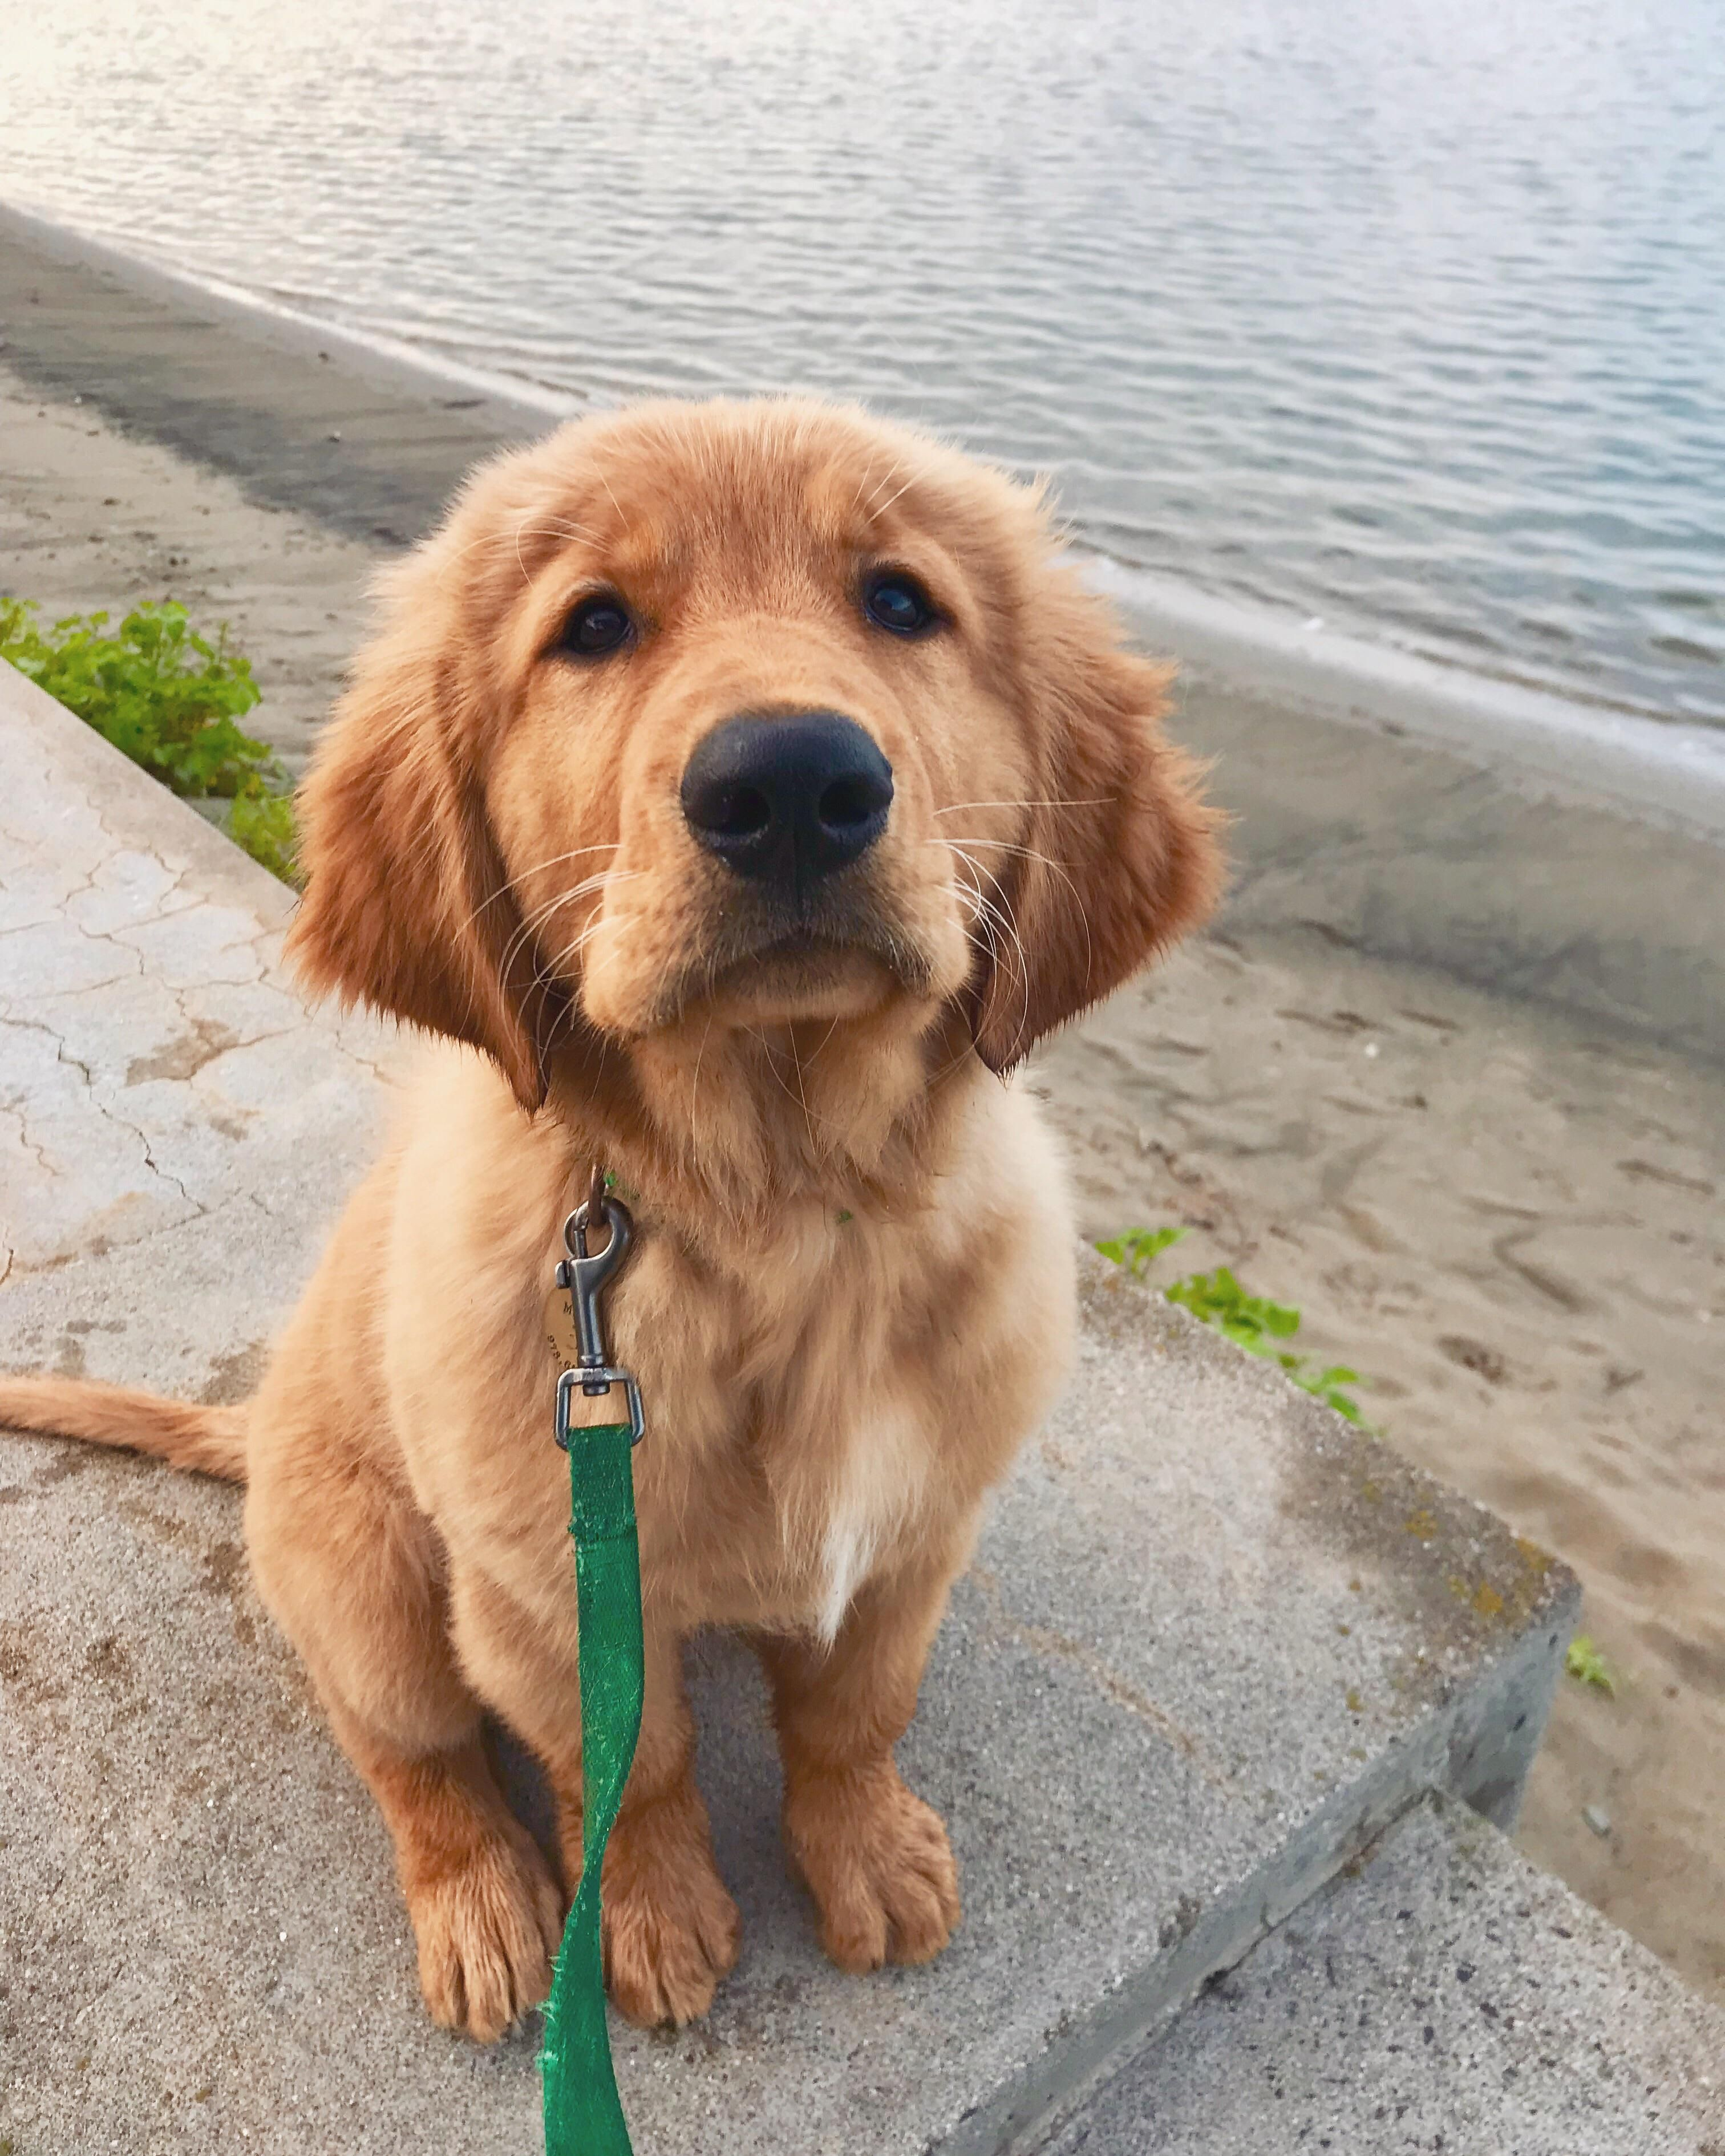 My Handsome Guy Cute Dogs And Puppies Dogs Golden Retriever